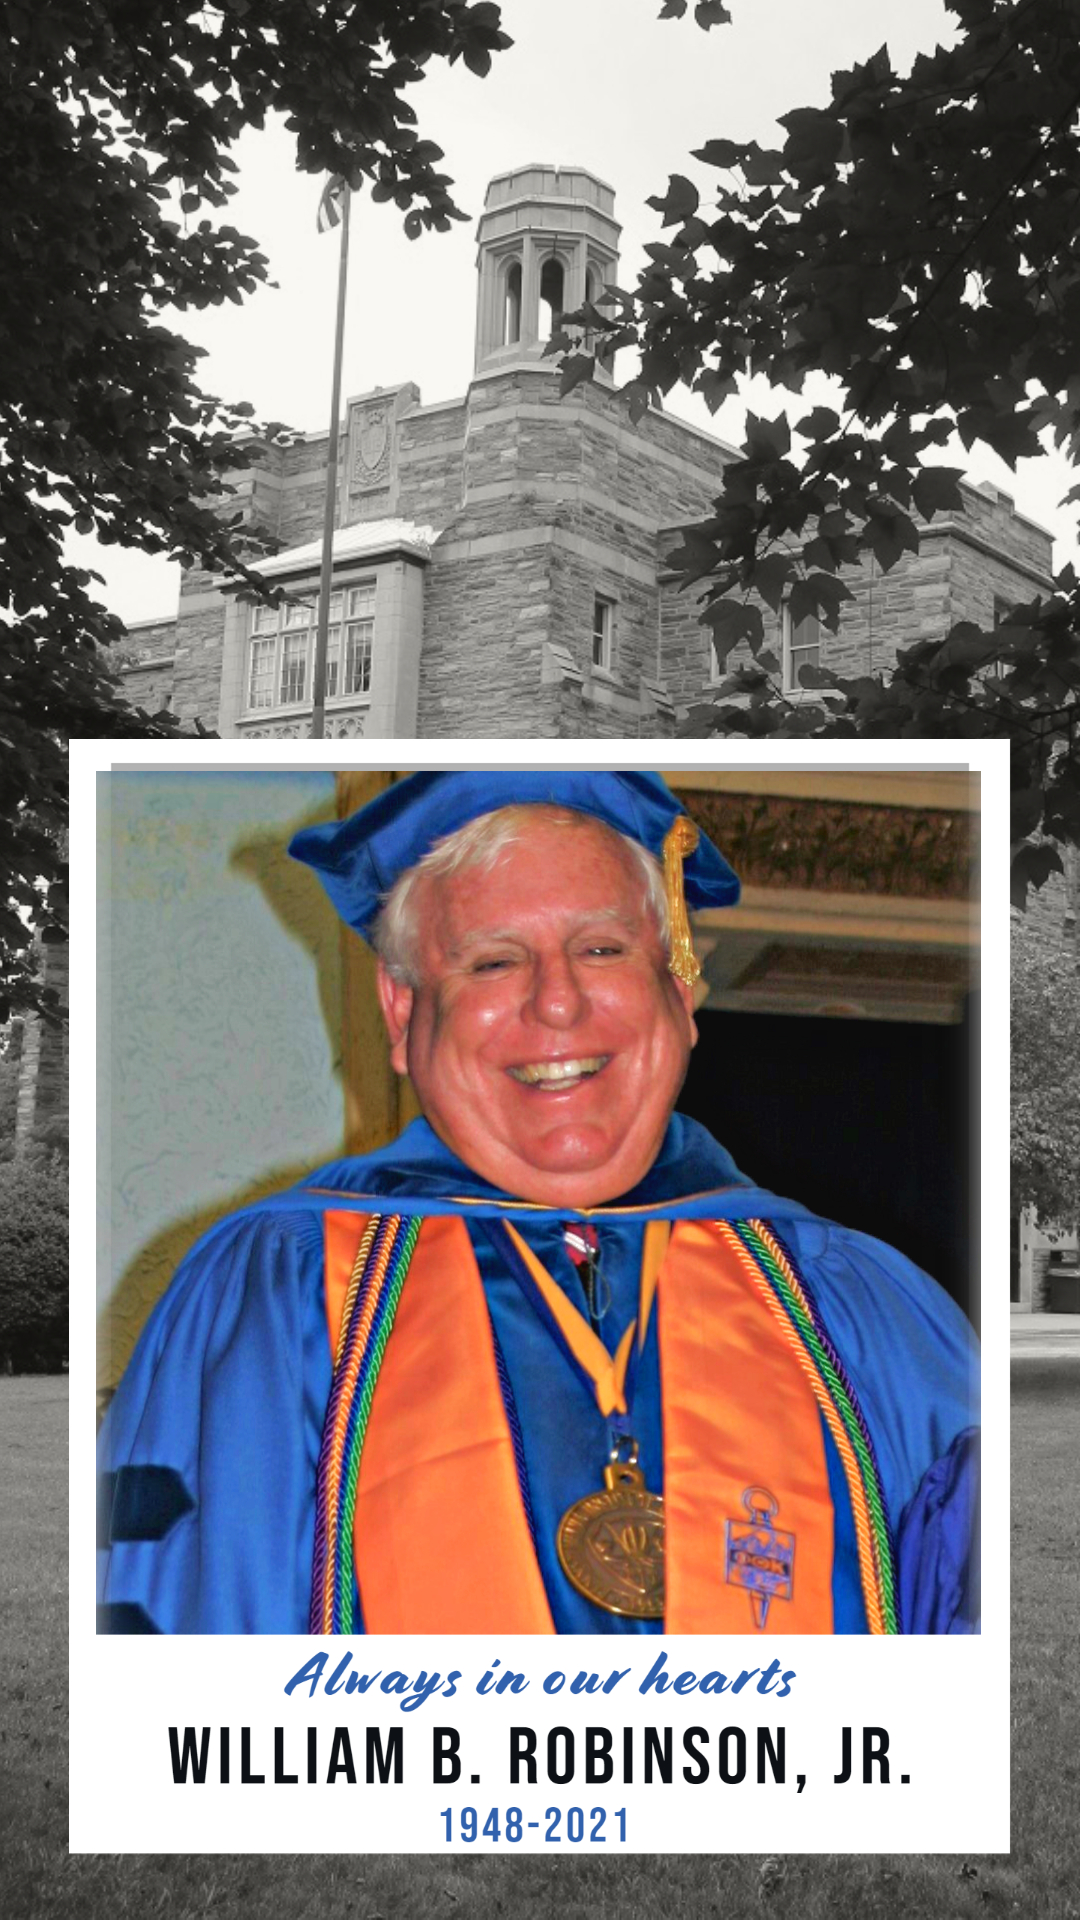 Pennsylvania Institute of Technology (P.I.T.) Announces the Passing of President William B. Robinson, Jr.